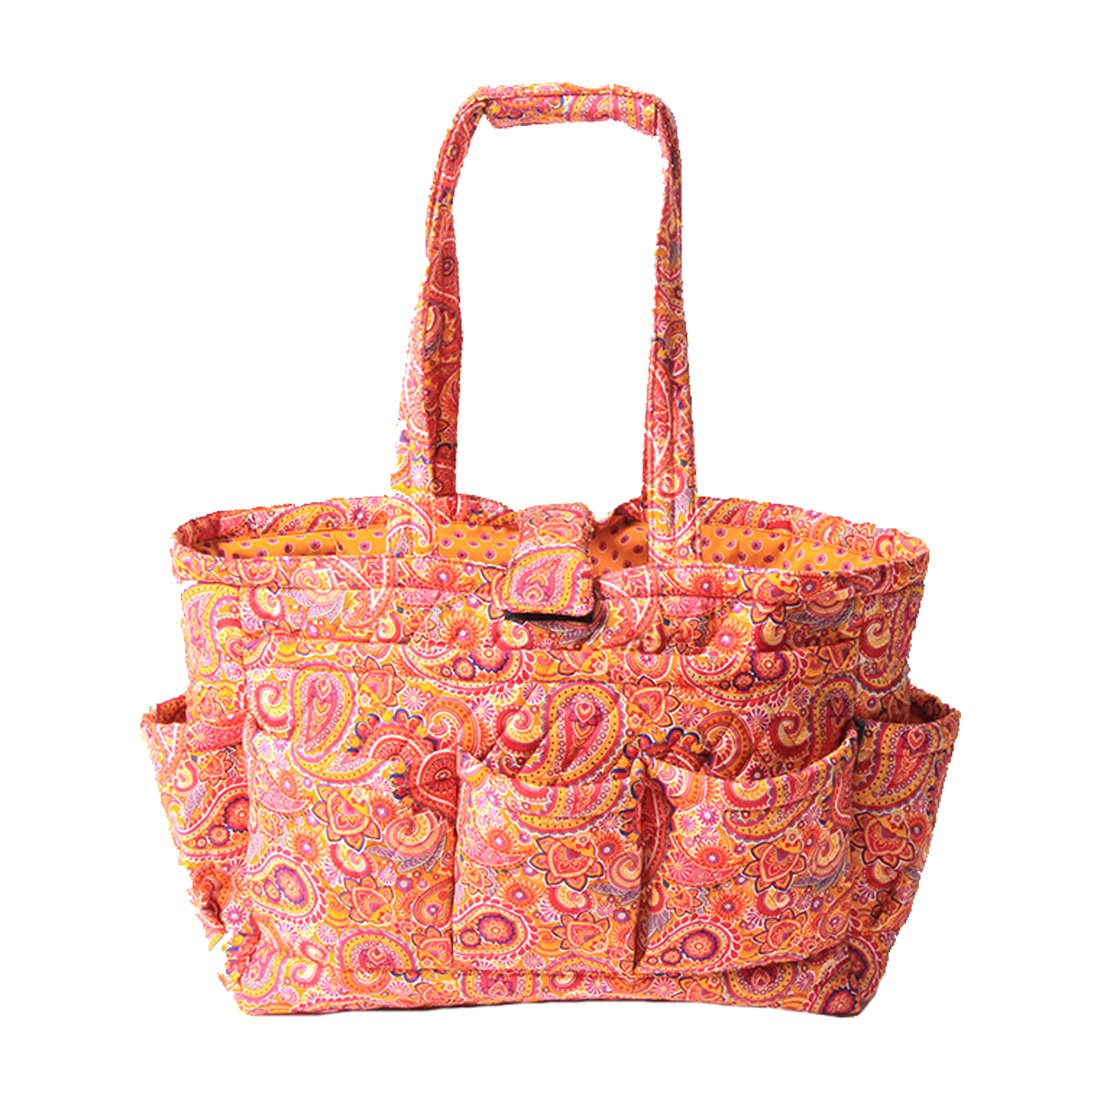 Knitting Tote Bag Organizer : Floral quilted cotton needle bag knitting yarn storage